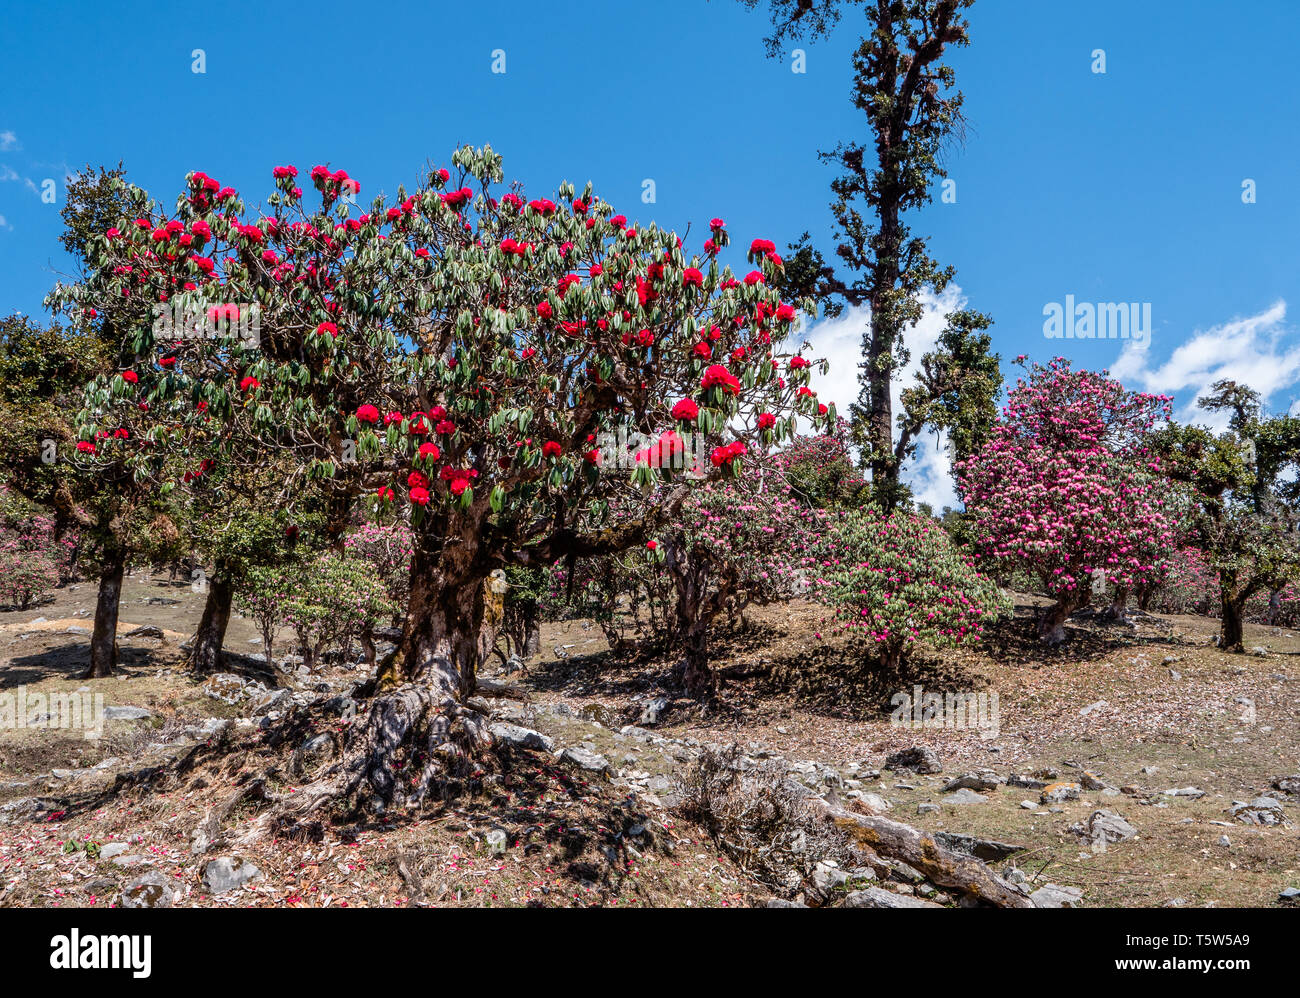 Rhododendron trees R. arboreum add splashes of colour to the landscape of the Himalayan foothills of the Saryu Valley in Uttarakhand Northern India - Stock Image